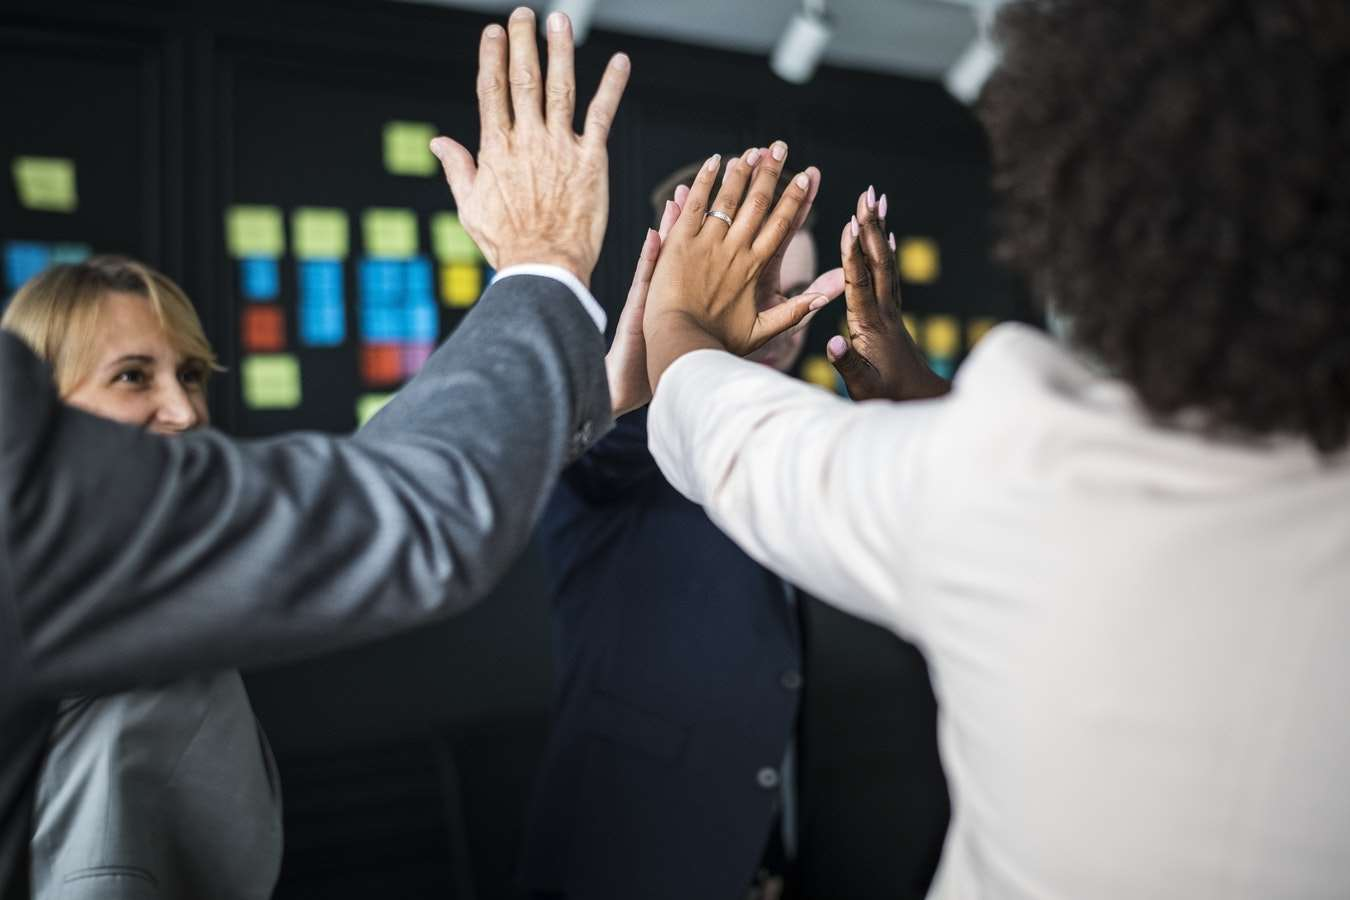 Improve your business by maximizing employee engagement